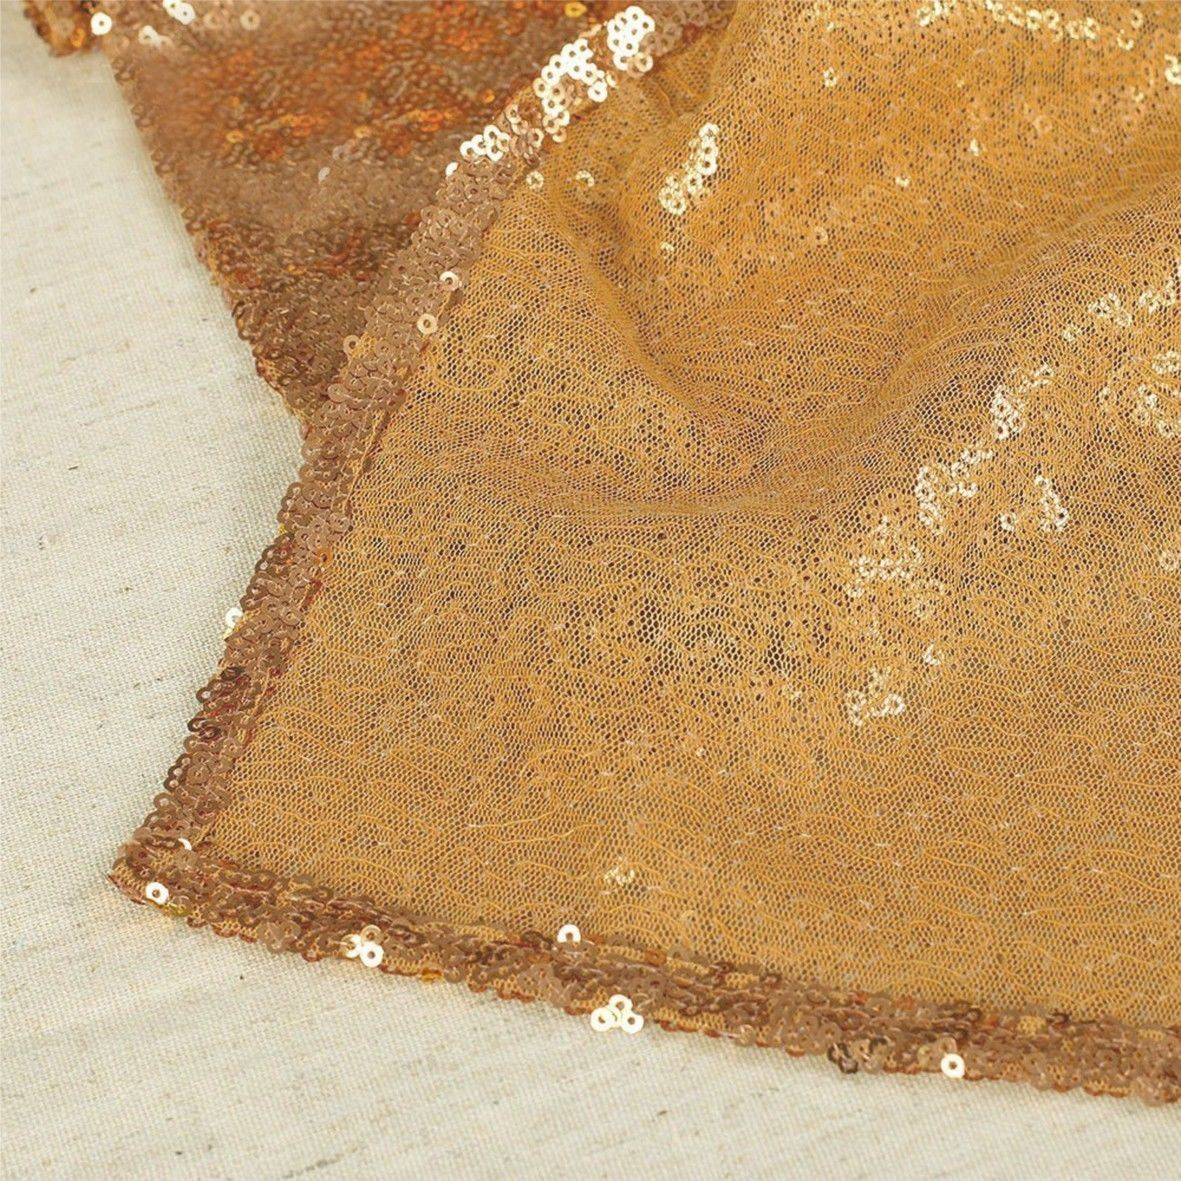 Glitter-Sequin-Table-Runners-Cloth-Rose-Gold-Silver-Sparkly-Wedding-Party-Decor thumbnail 11